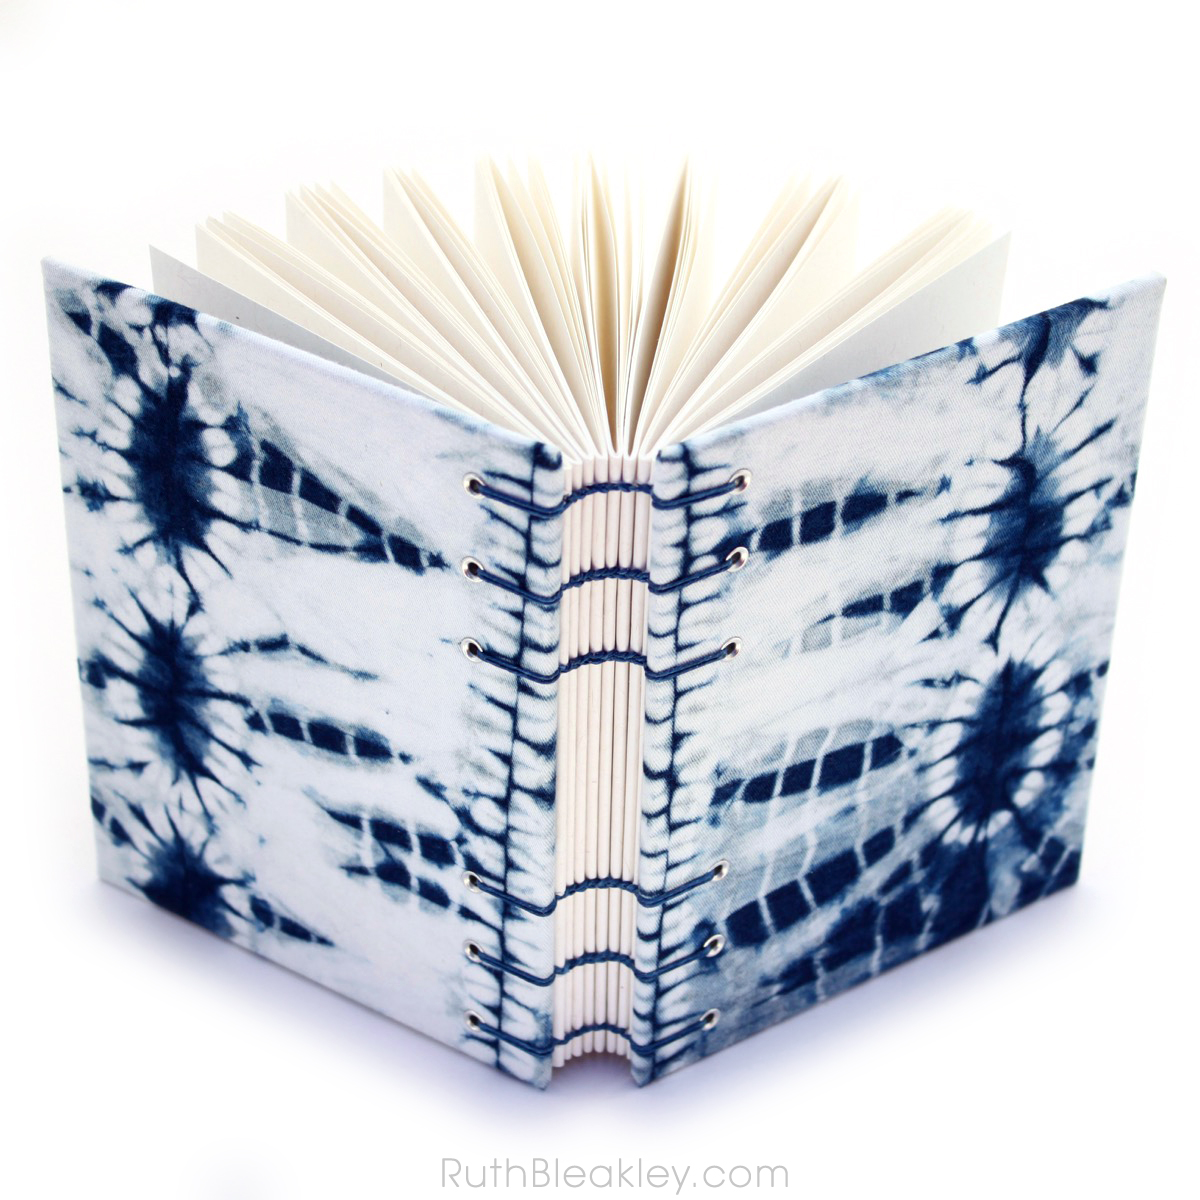 Indigo Shibori Tie Dye Journal - dental X ray - Ruth Bleakley - 4